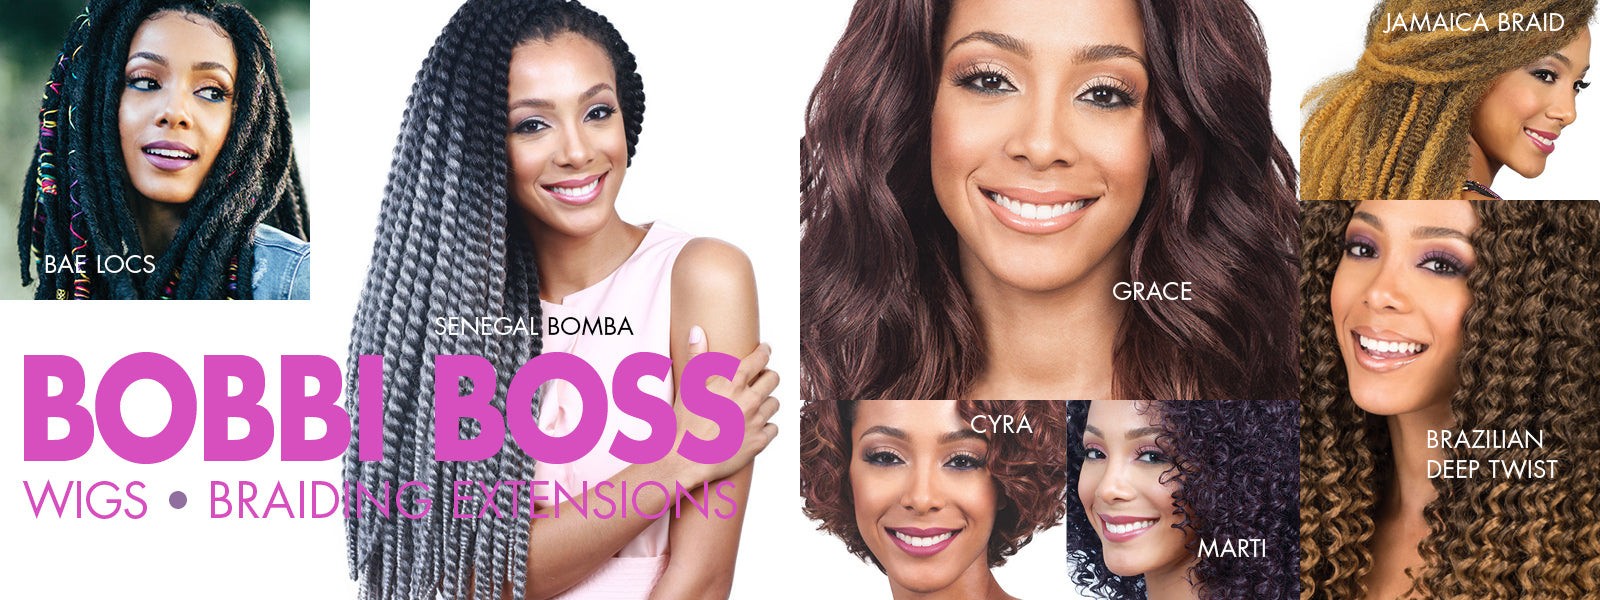 Bobbi Boss Wigs and Braiding/Crochet Extensions